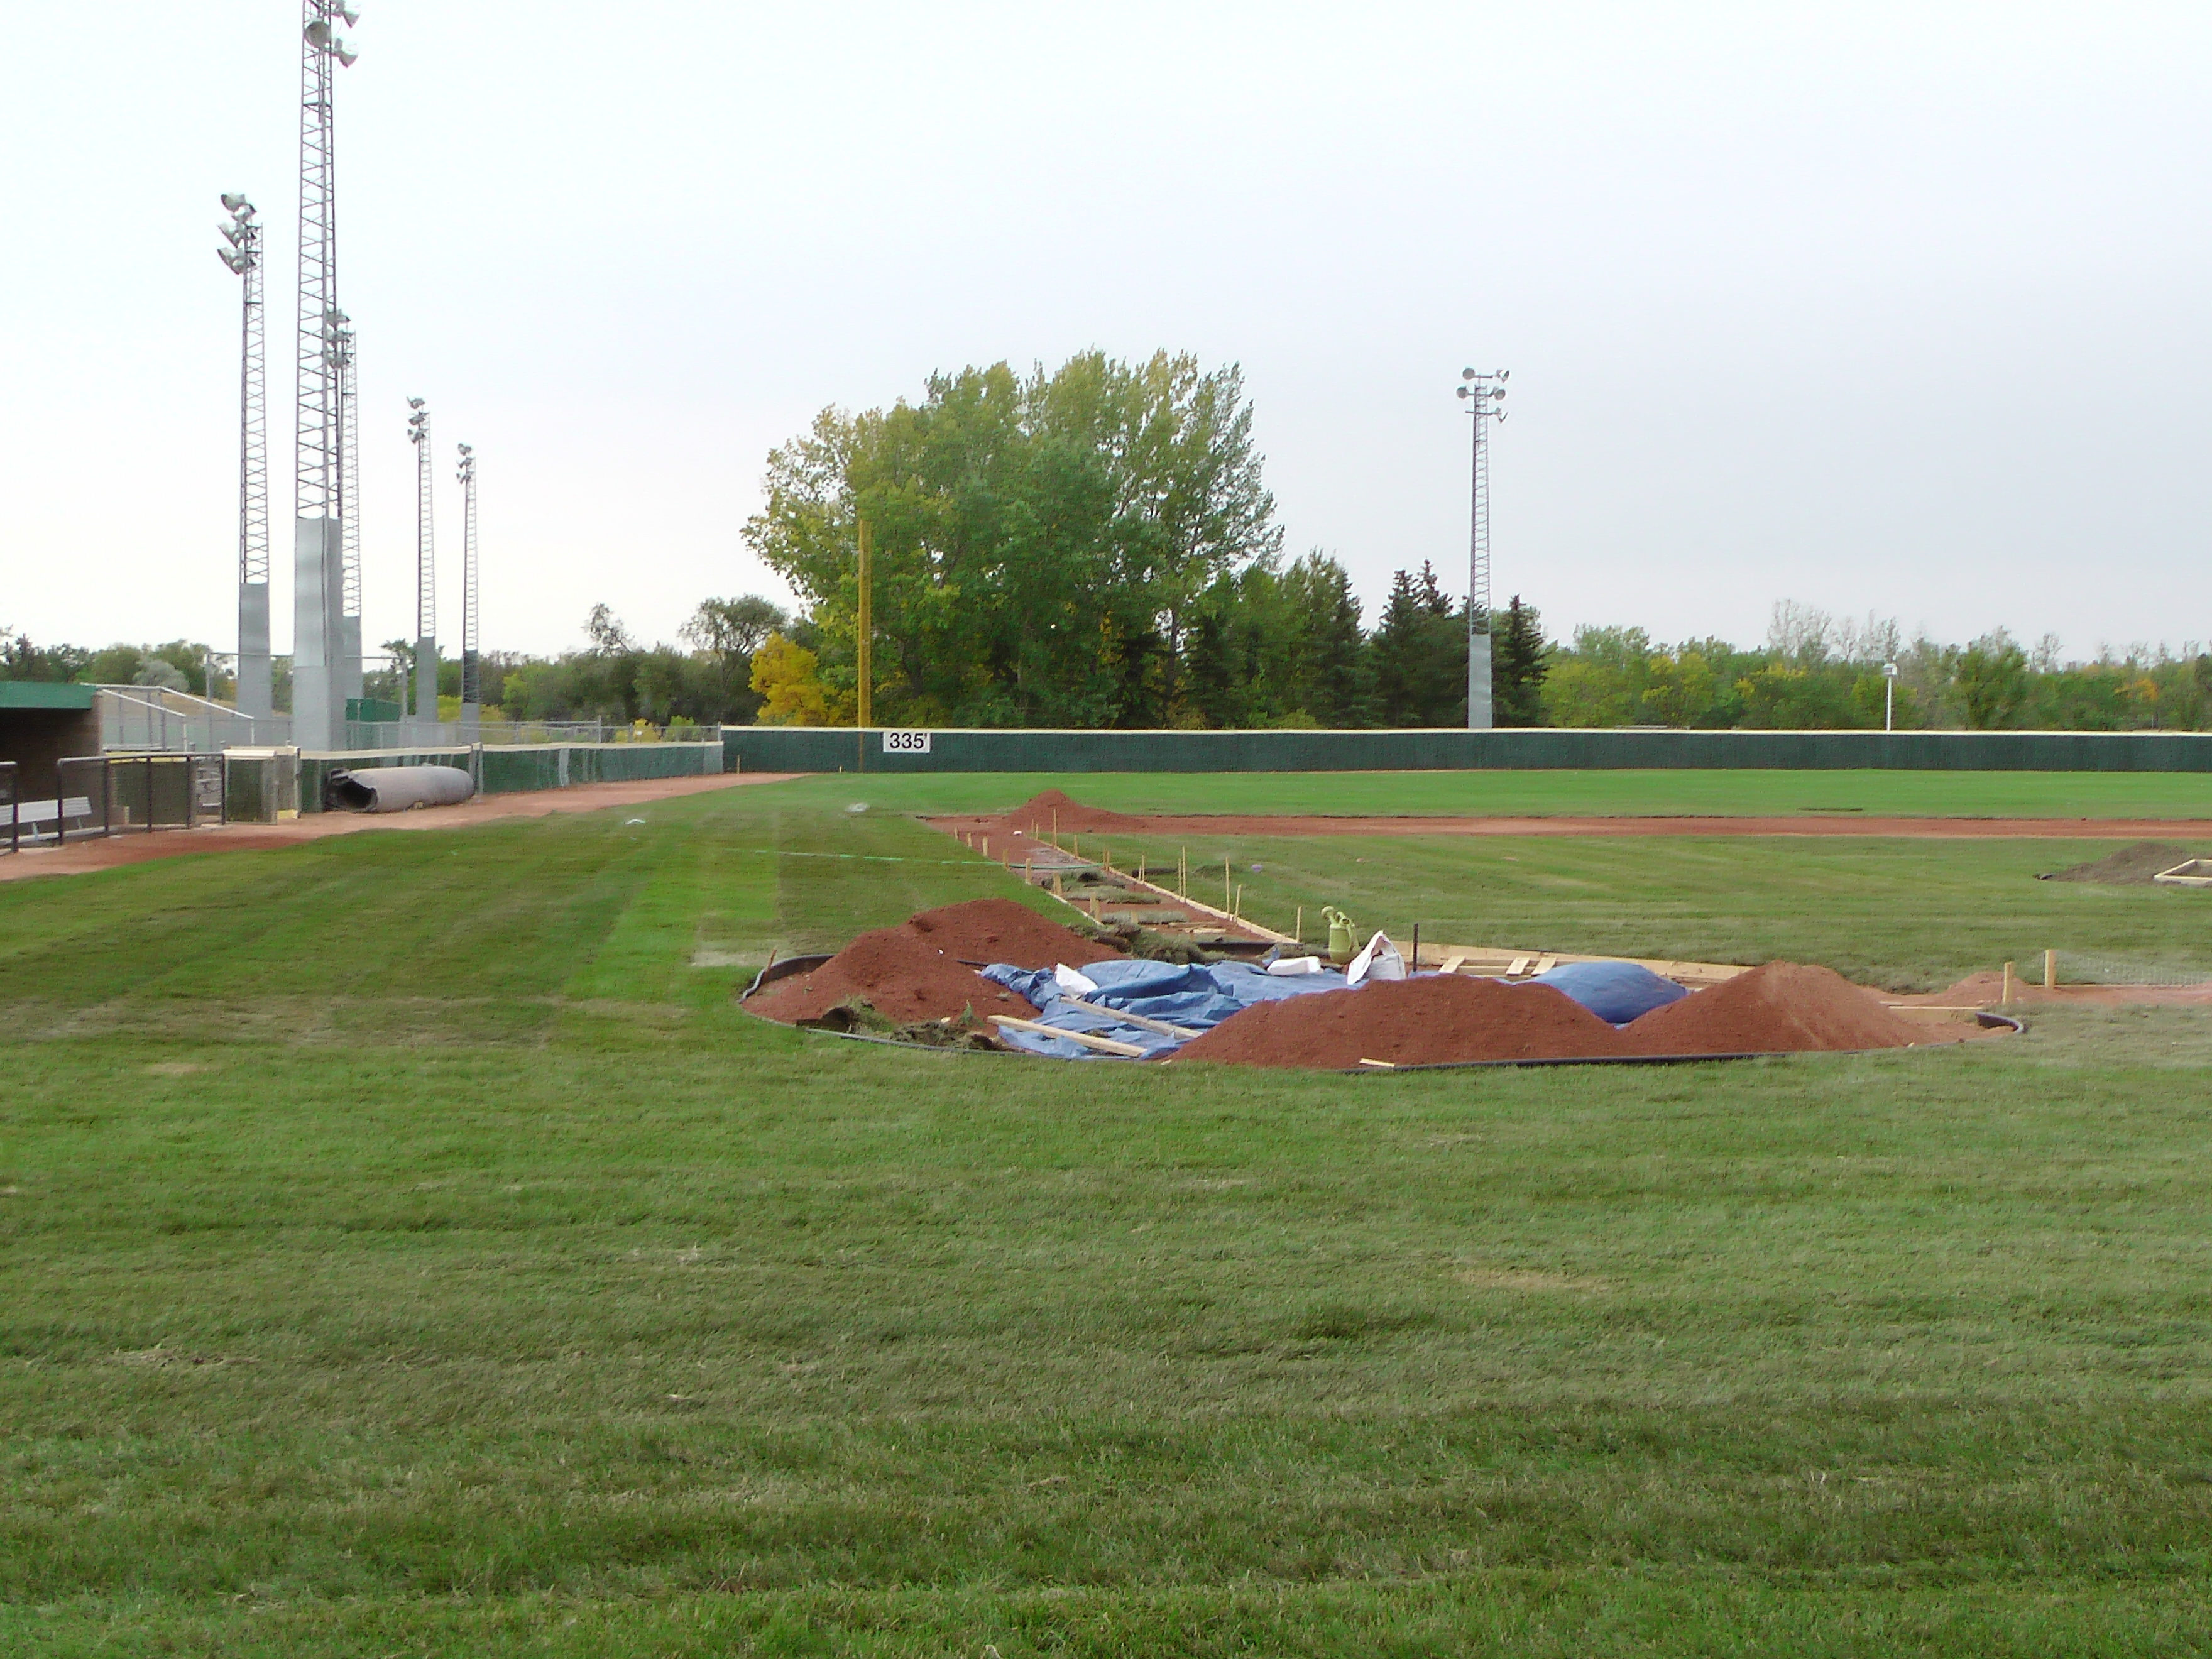 Sept 7 & 8 2018, Optimist Park Field Renovations, sod down being watered - Image 15